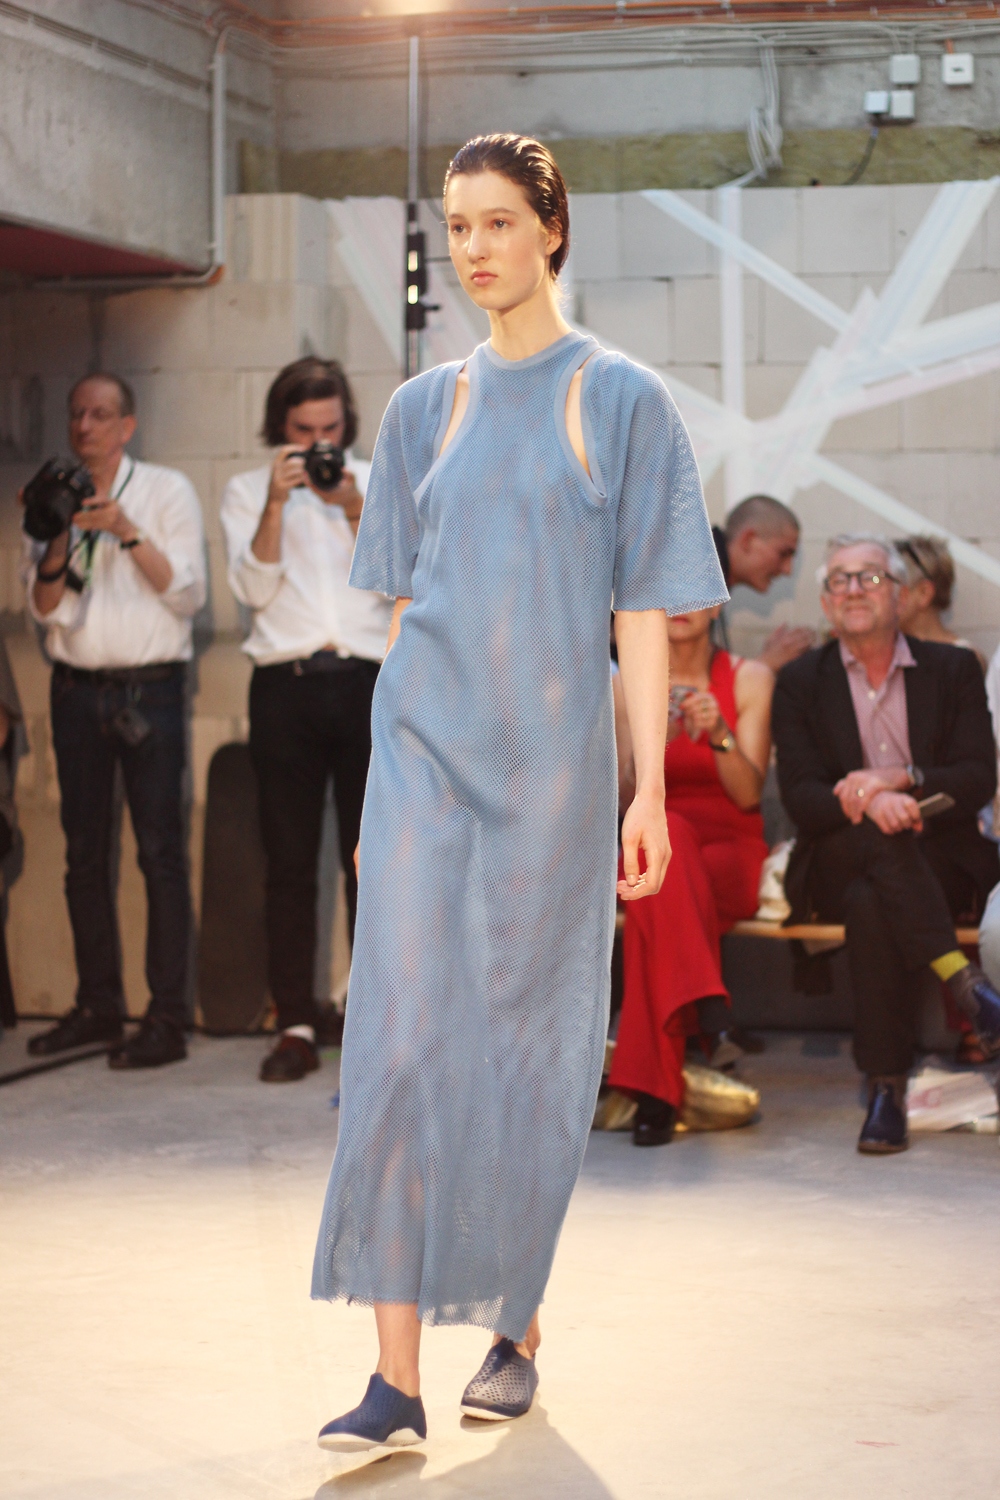 fatimayarie-berlinfashionweek-samplecm-runway-blue-dress-img_4036